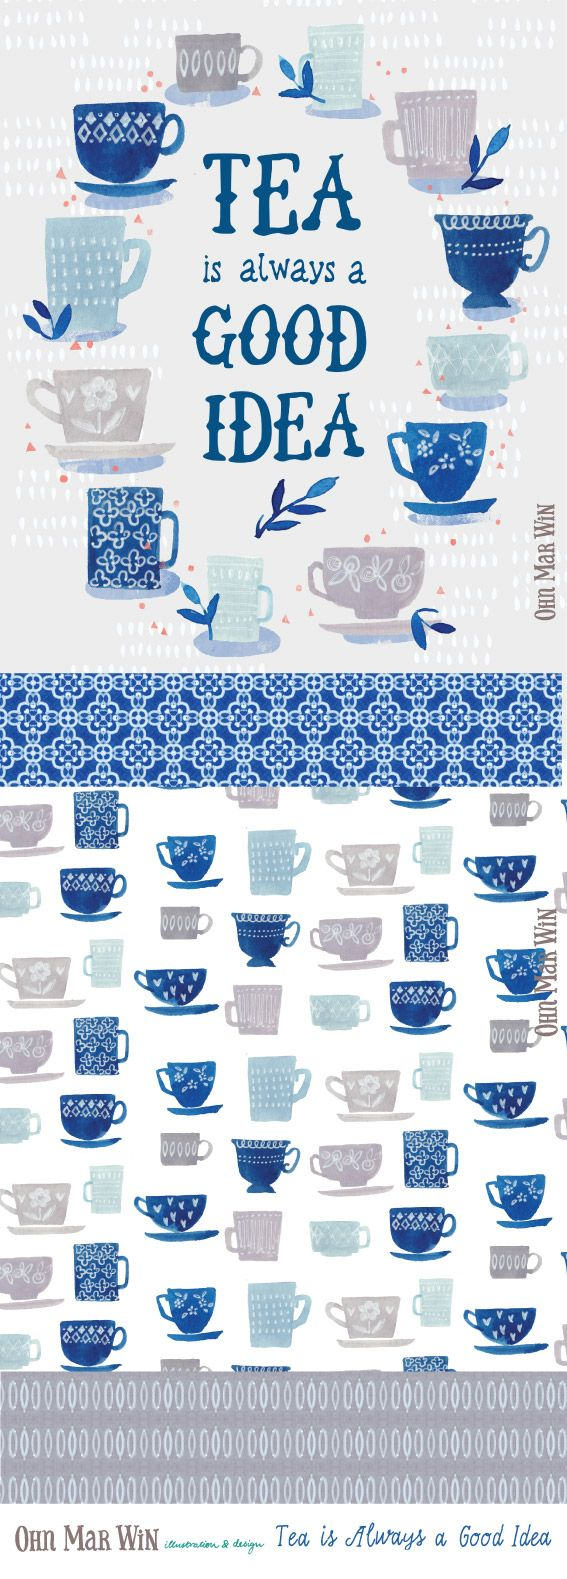 FOOD & DRINK — Ohn Mar Win Illustration Tea vintage tea cups surface pattern